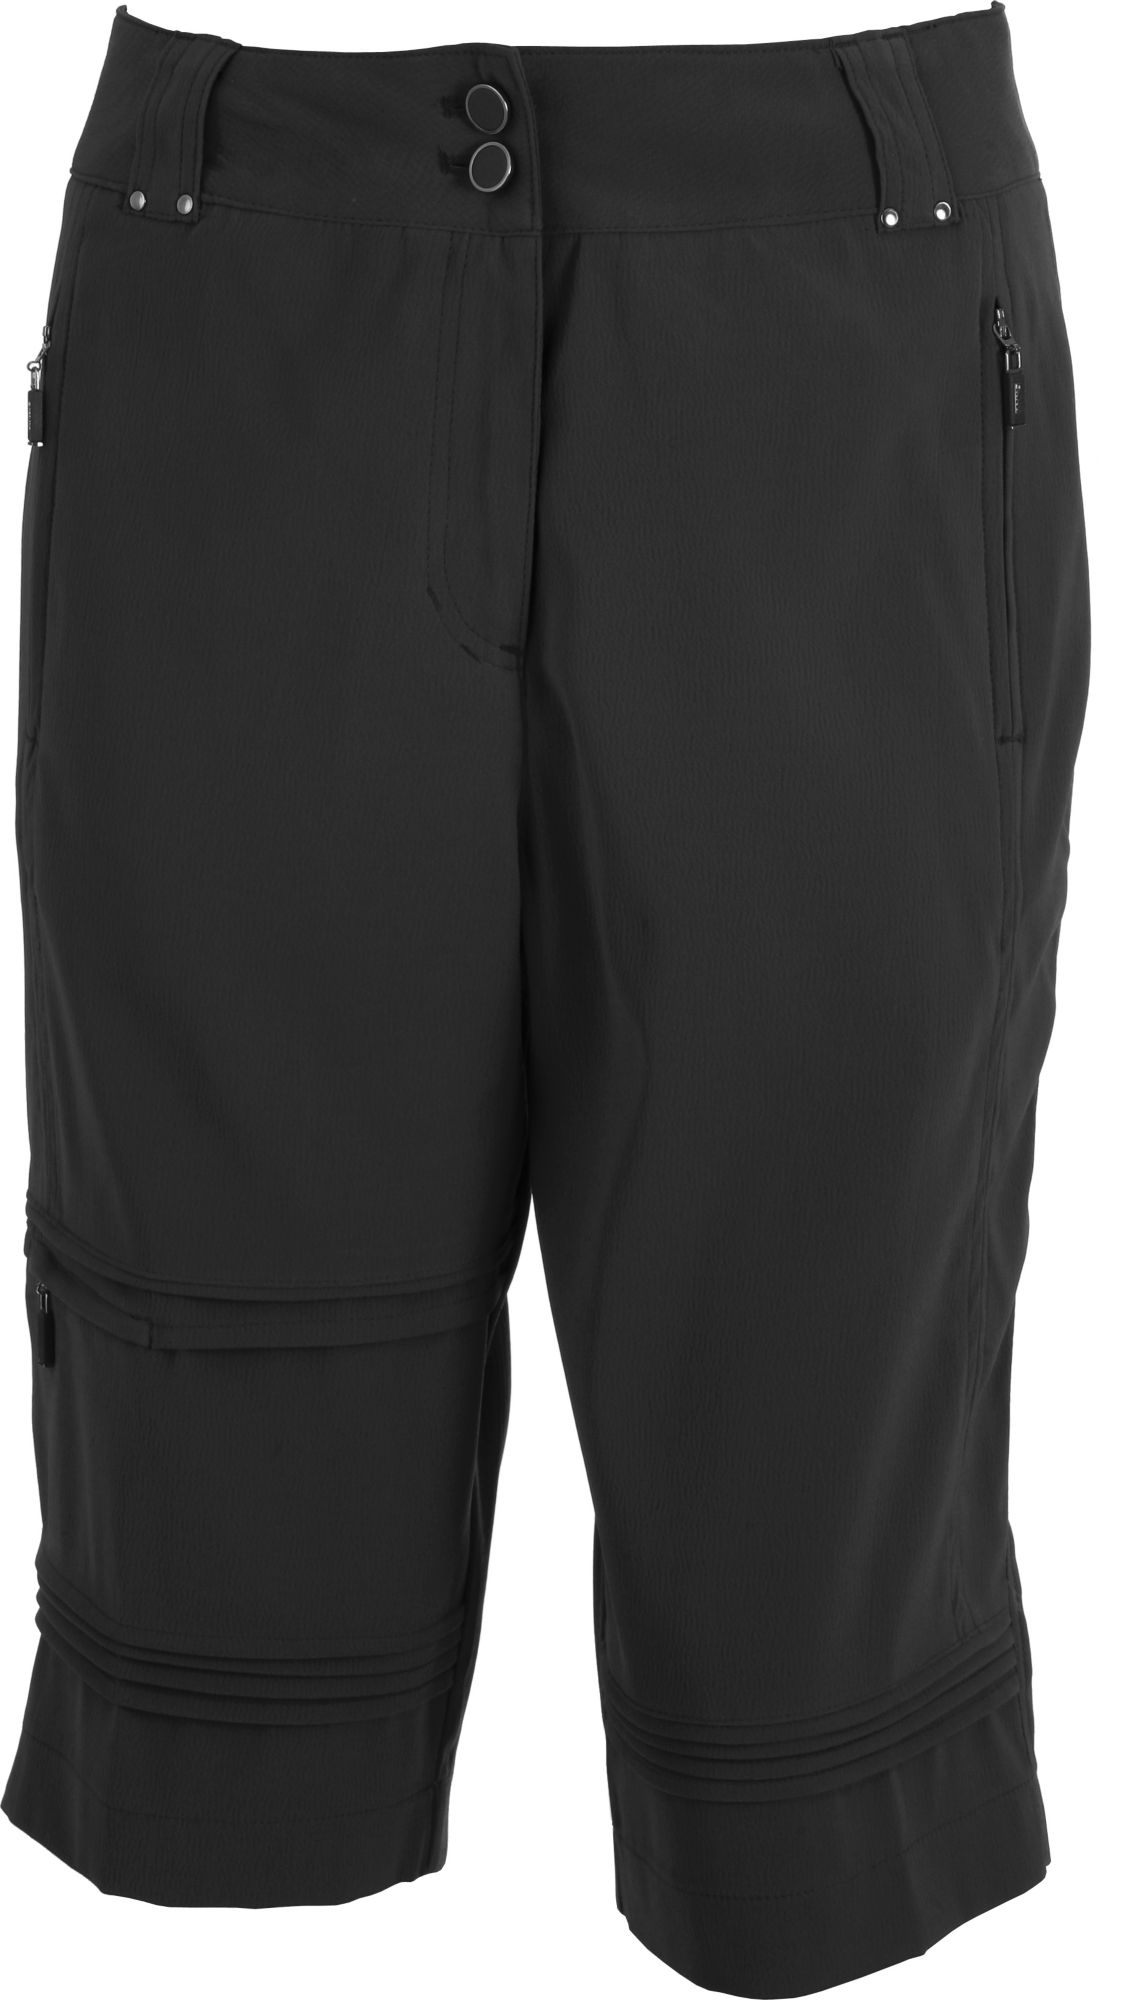 DKNY Women's Basic Knee Capri